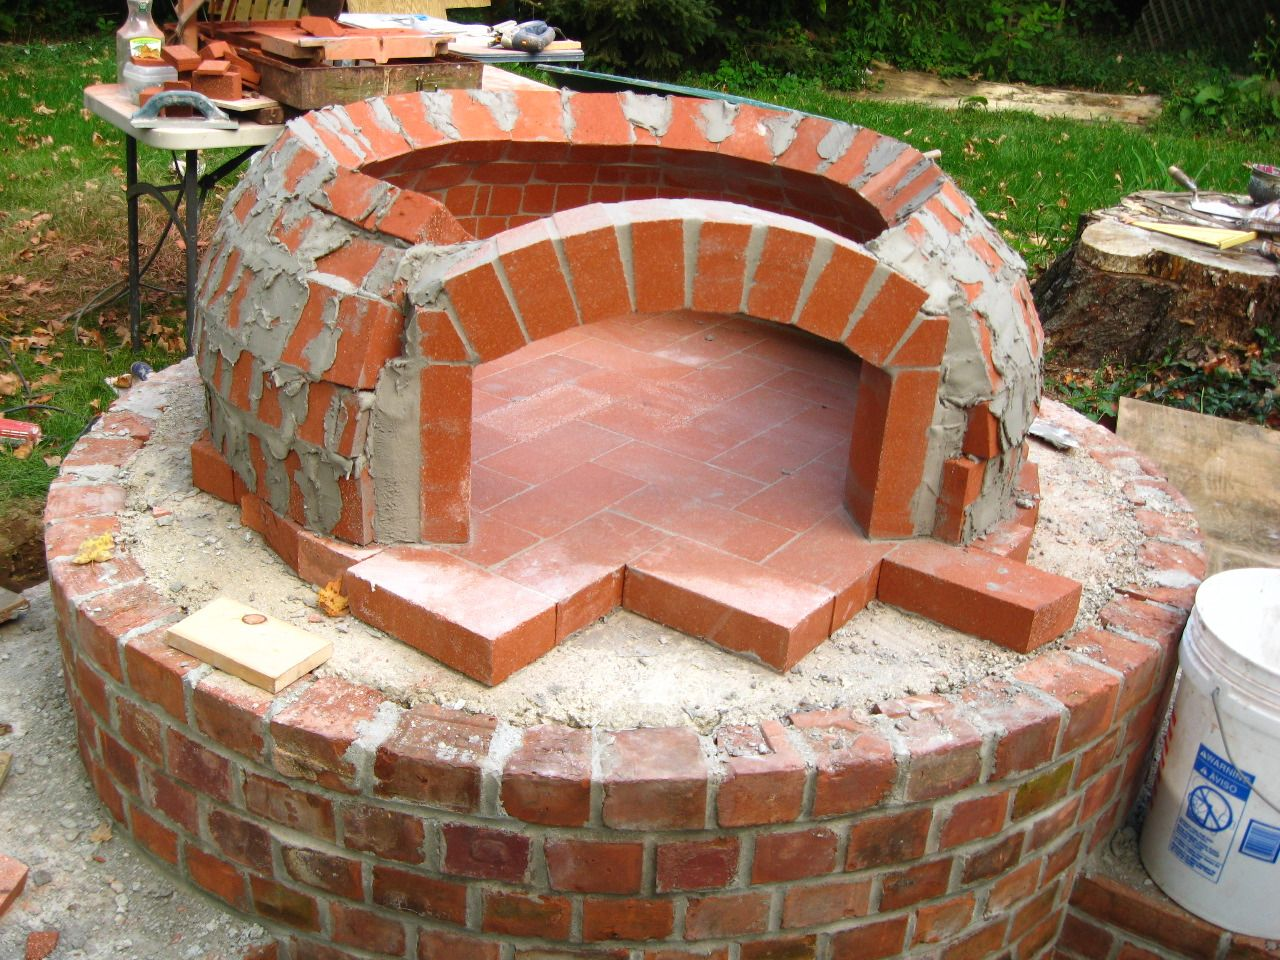 outdoor fireplace and oven plans research pizza ovens and woodfired cooking